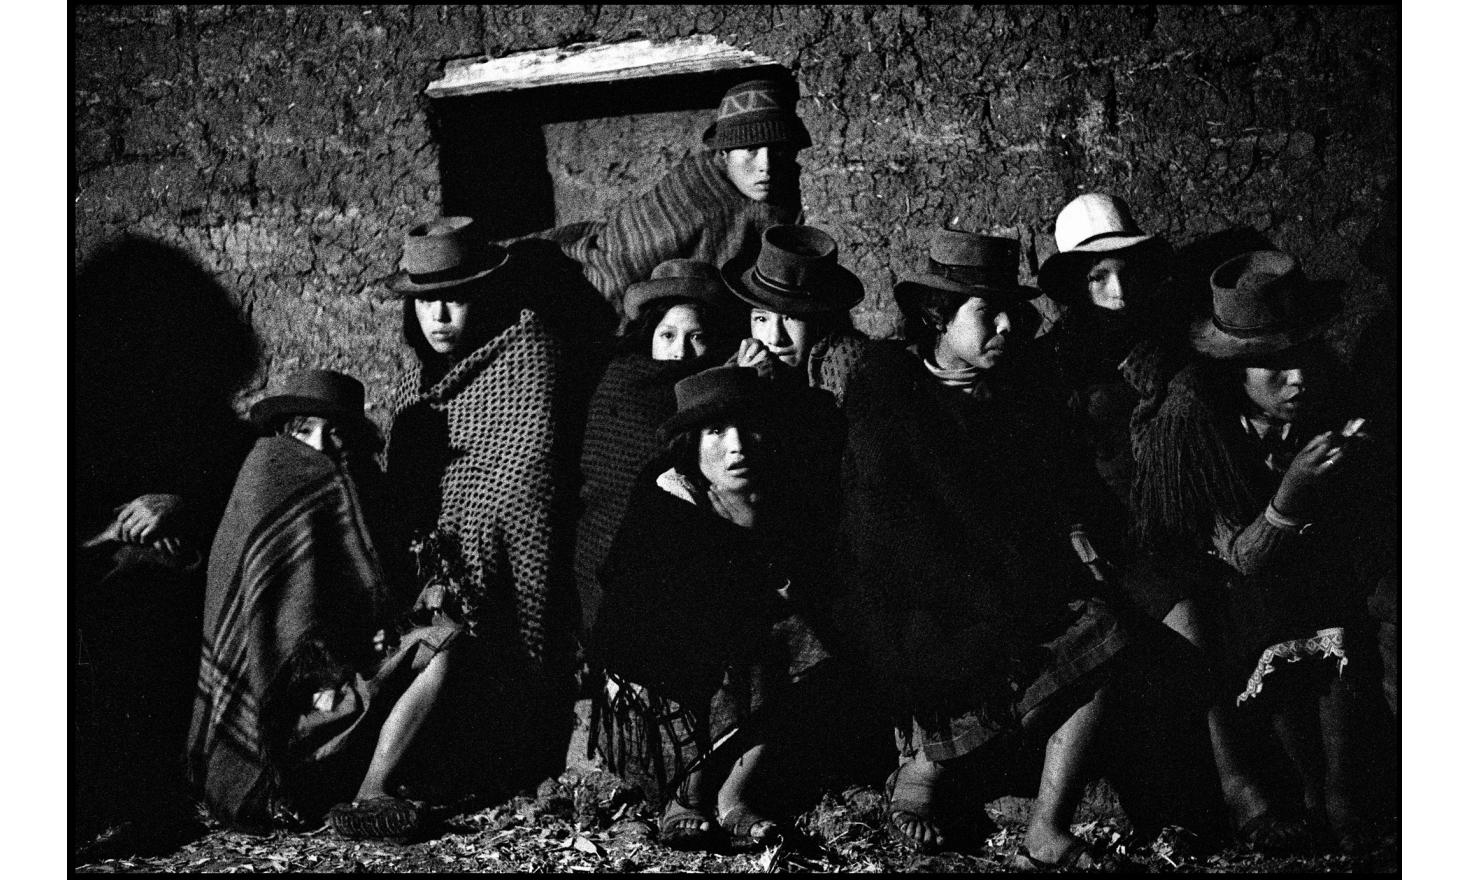 Night meeting of peruvian campesinos in the Andes. Peru, October 1982.